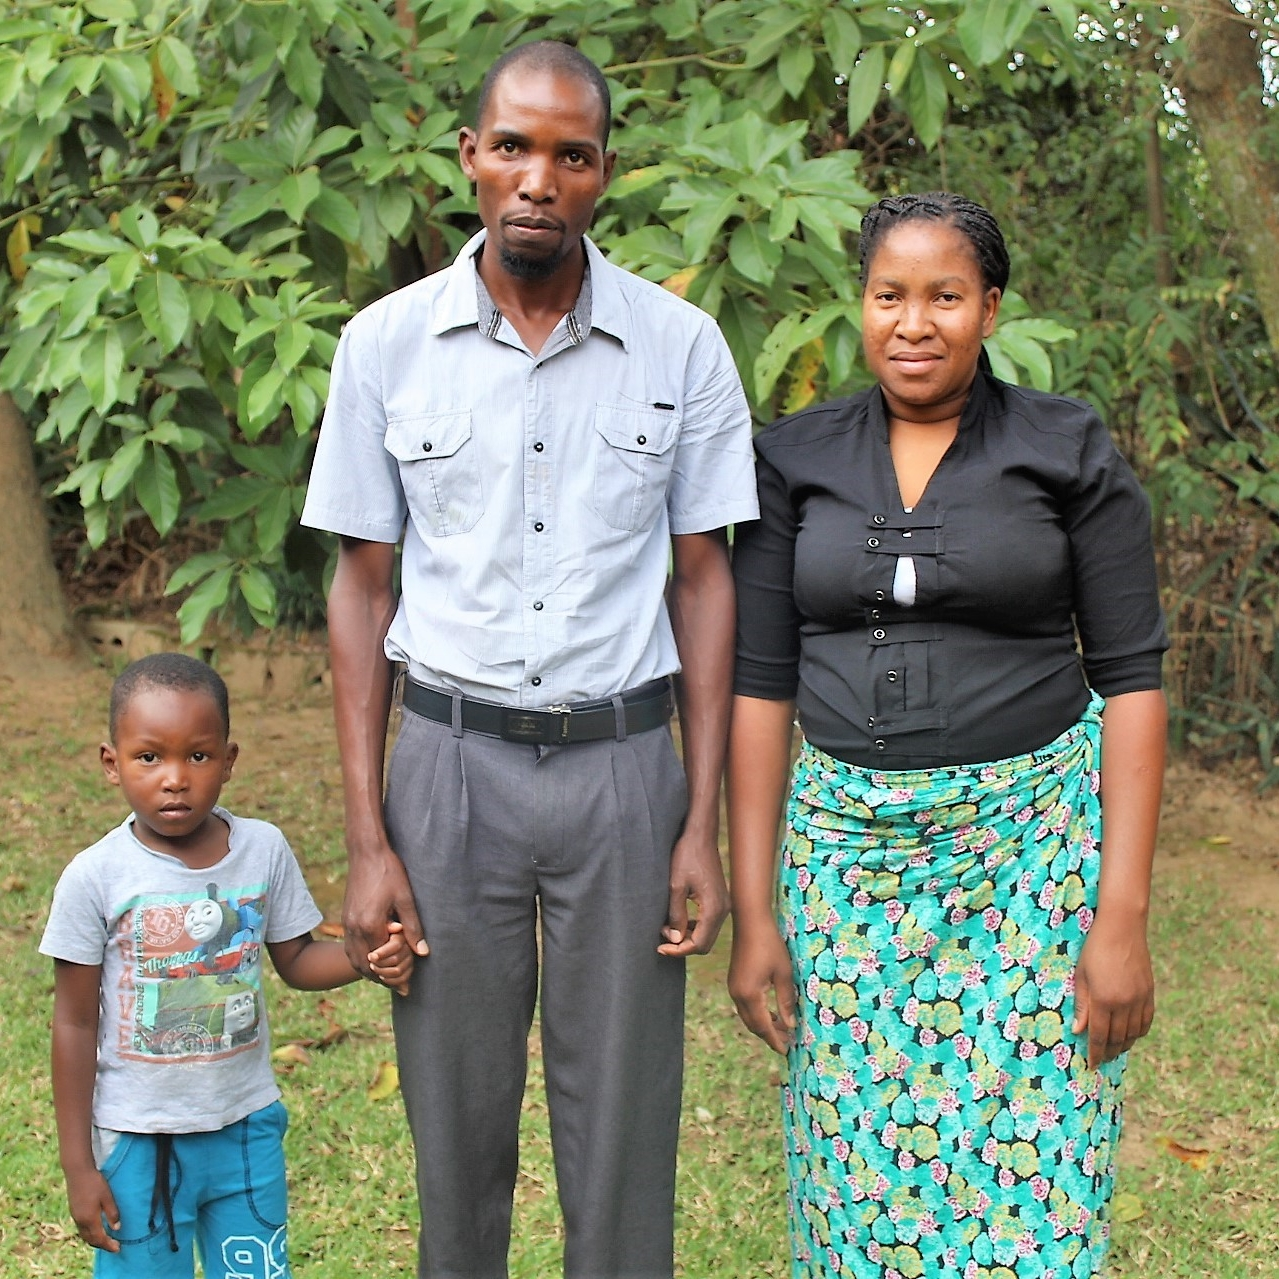 Jose and Obed Bazima with their son, Khensani